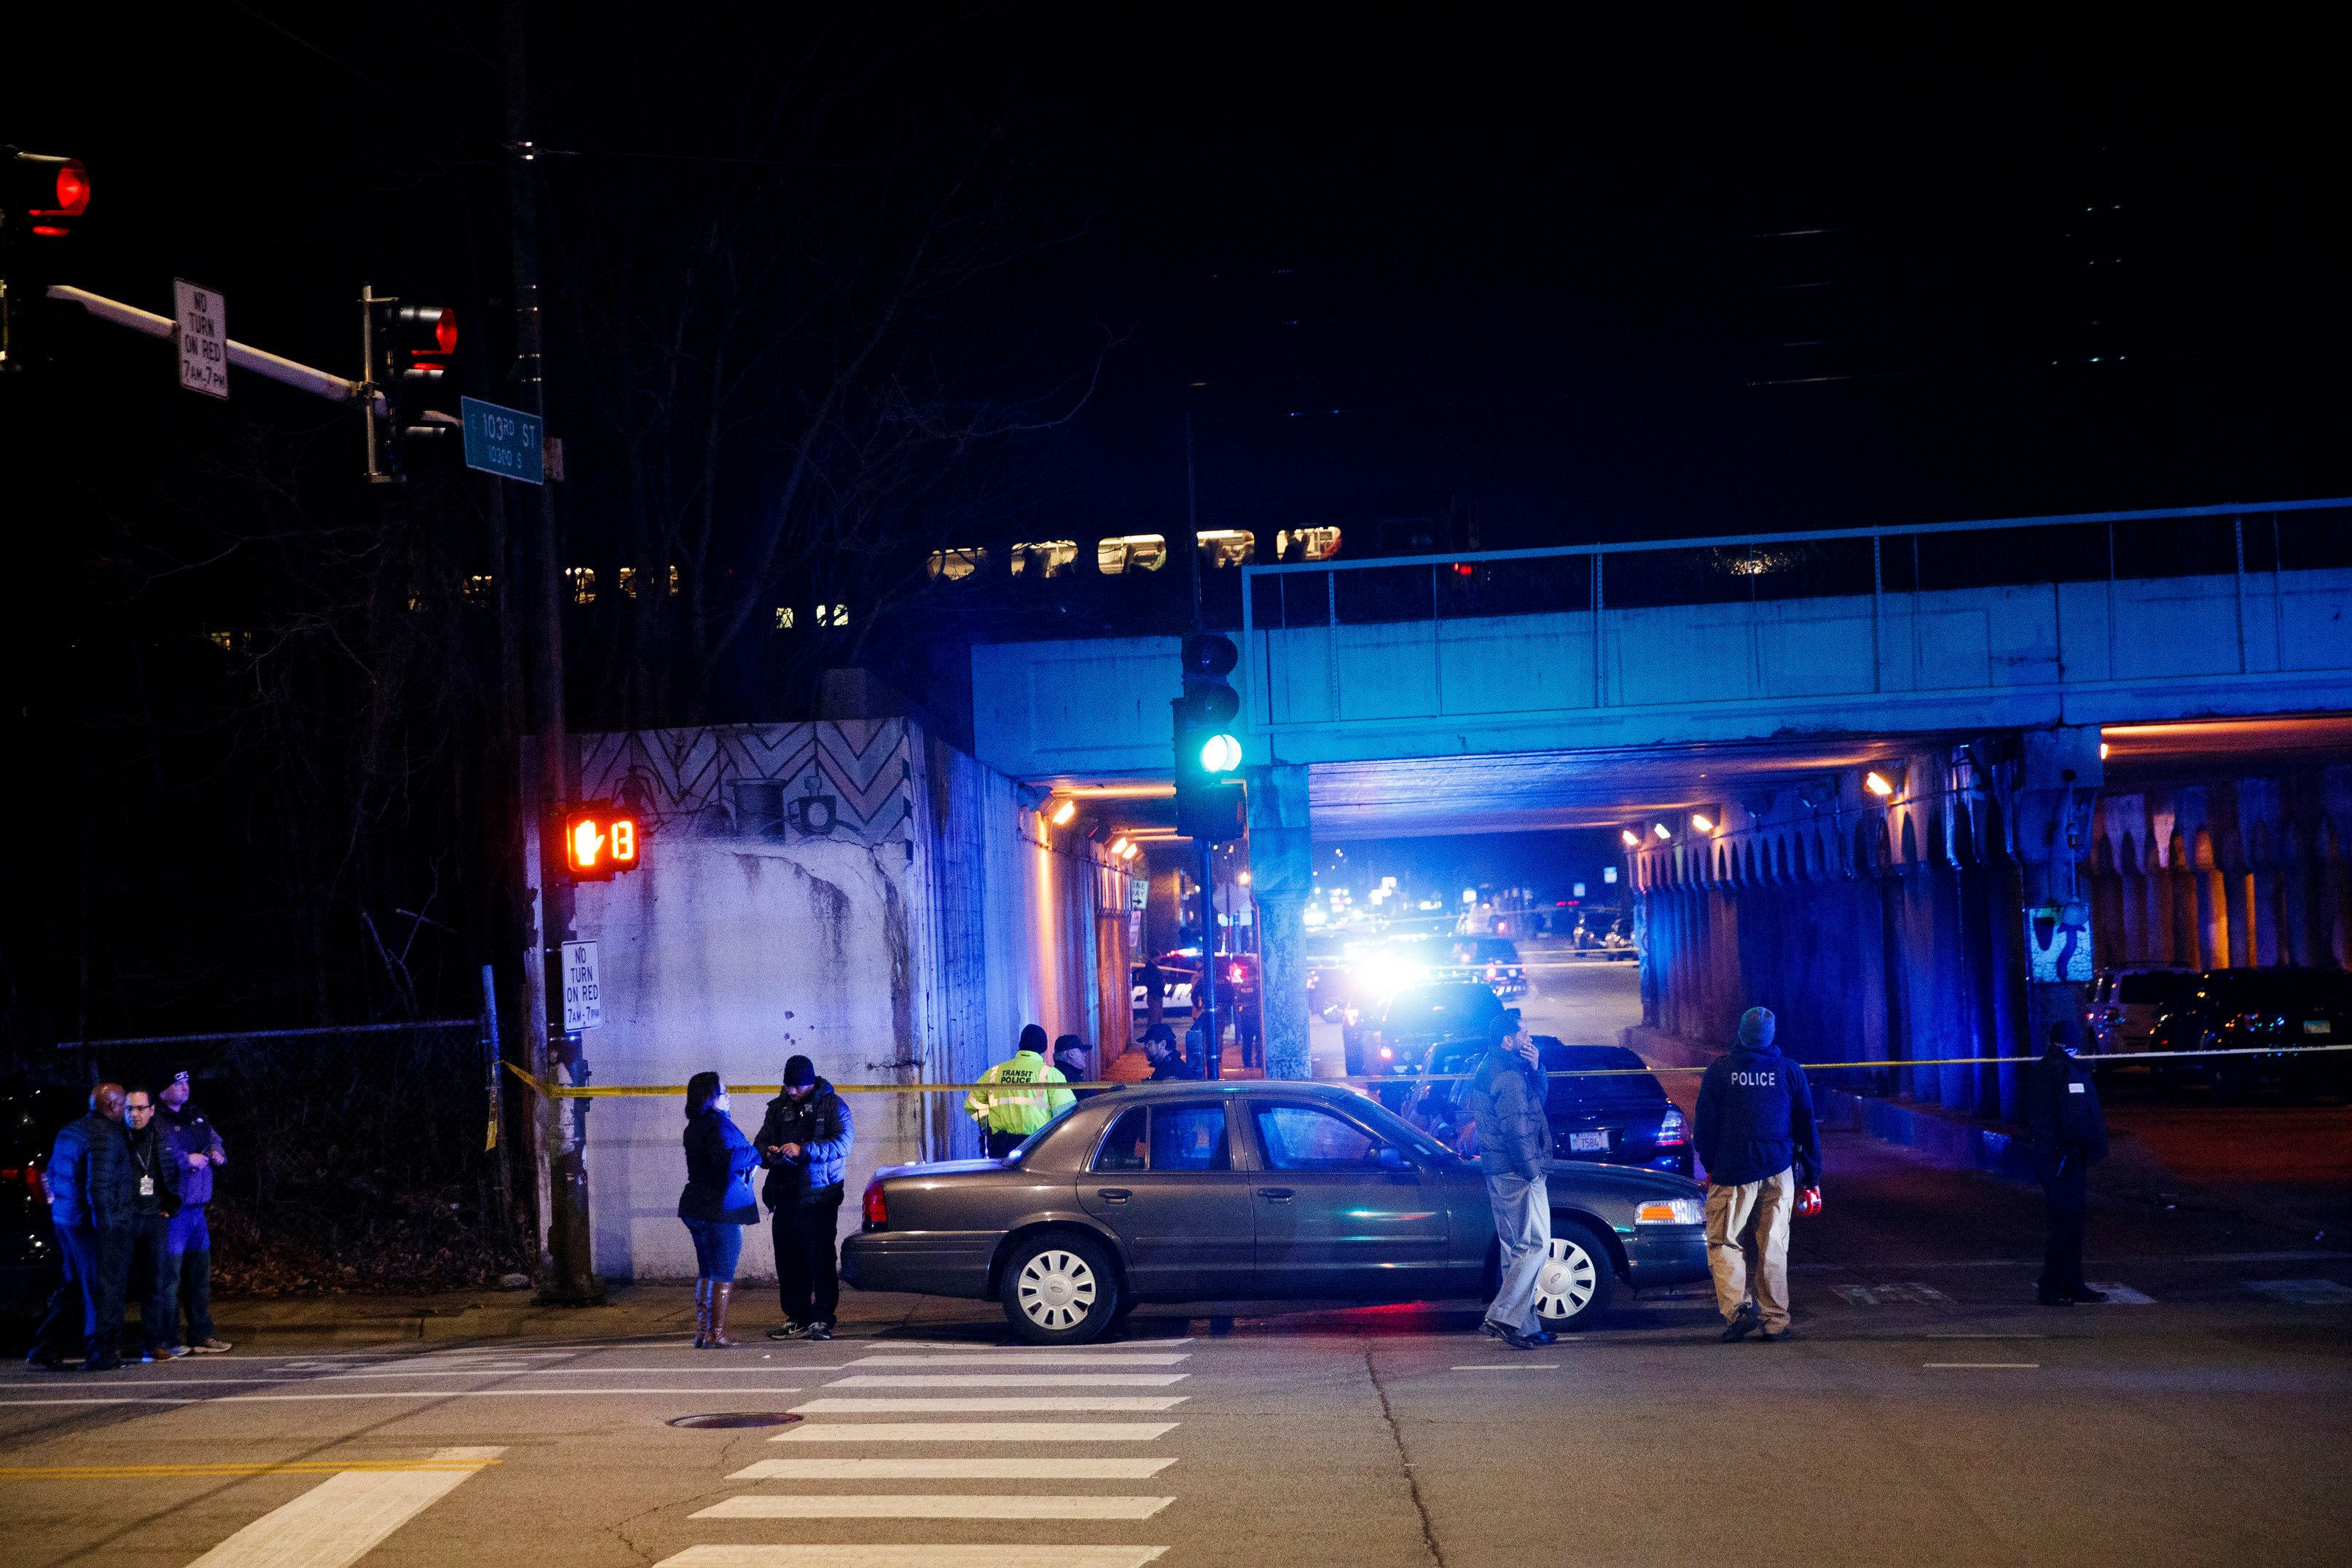 """Police investigate the scene where two officers were killed after they were struck by a South Shore train near 103rd Street and Dauphin Avenue on Monday, Dec. 17, 2018, in Chicago. Police spokesman Anthony Guglielmi posted on Twitter that the """"devastating tragedy"""" occurred when the officers were investigating a shots-fired call. (Armando L. Sanchez/Chicago Tribune via AP)"""